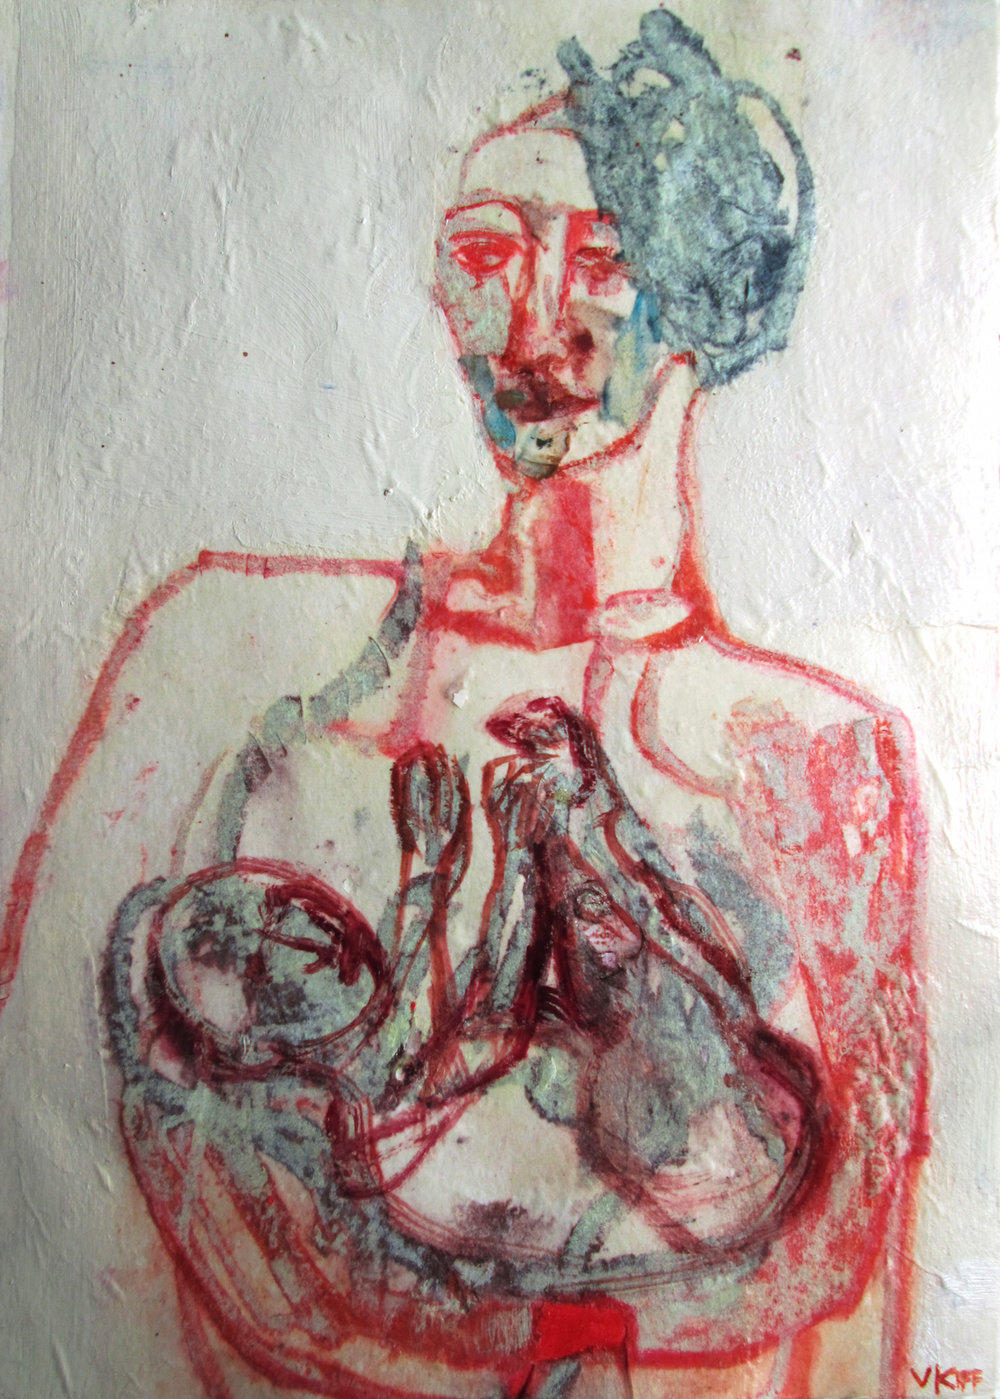 Title: Lutetian Reddish Size: 19 x 28 cm Medium: Ink and pastel on paper